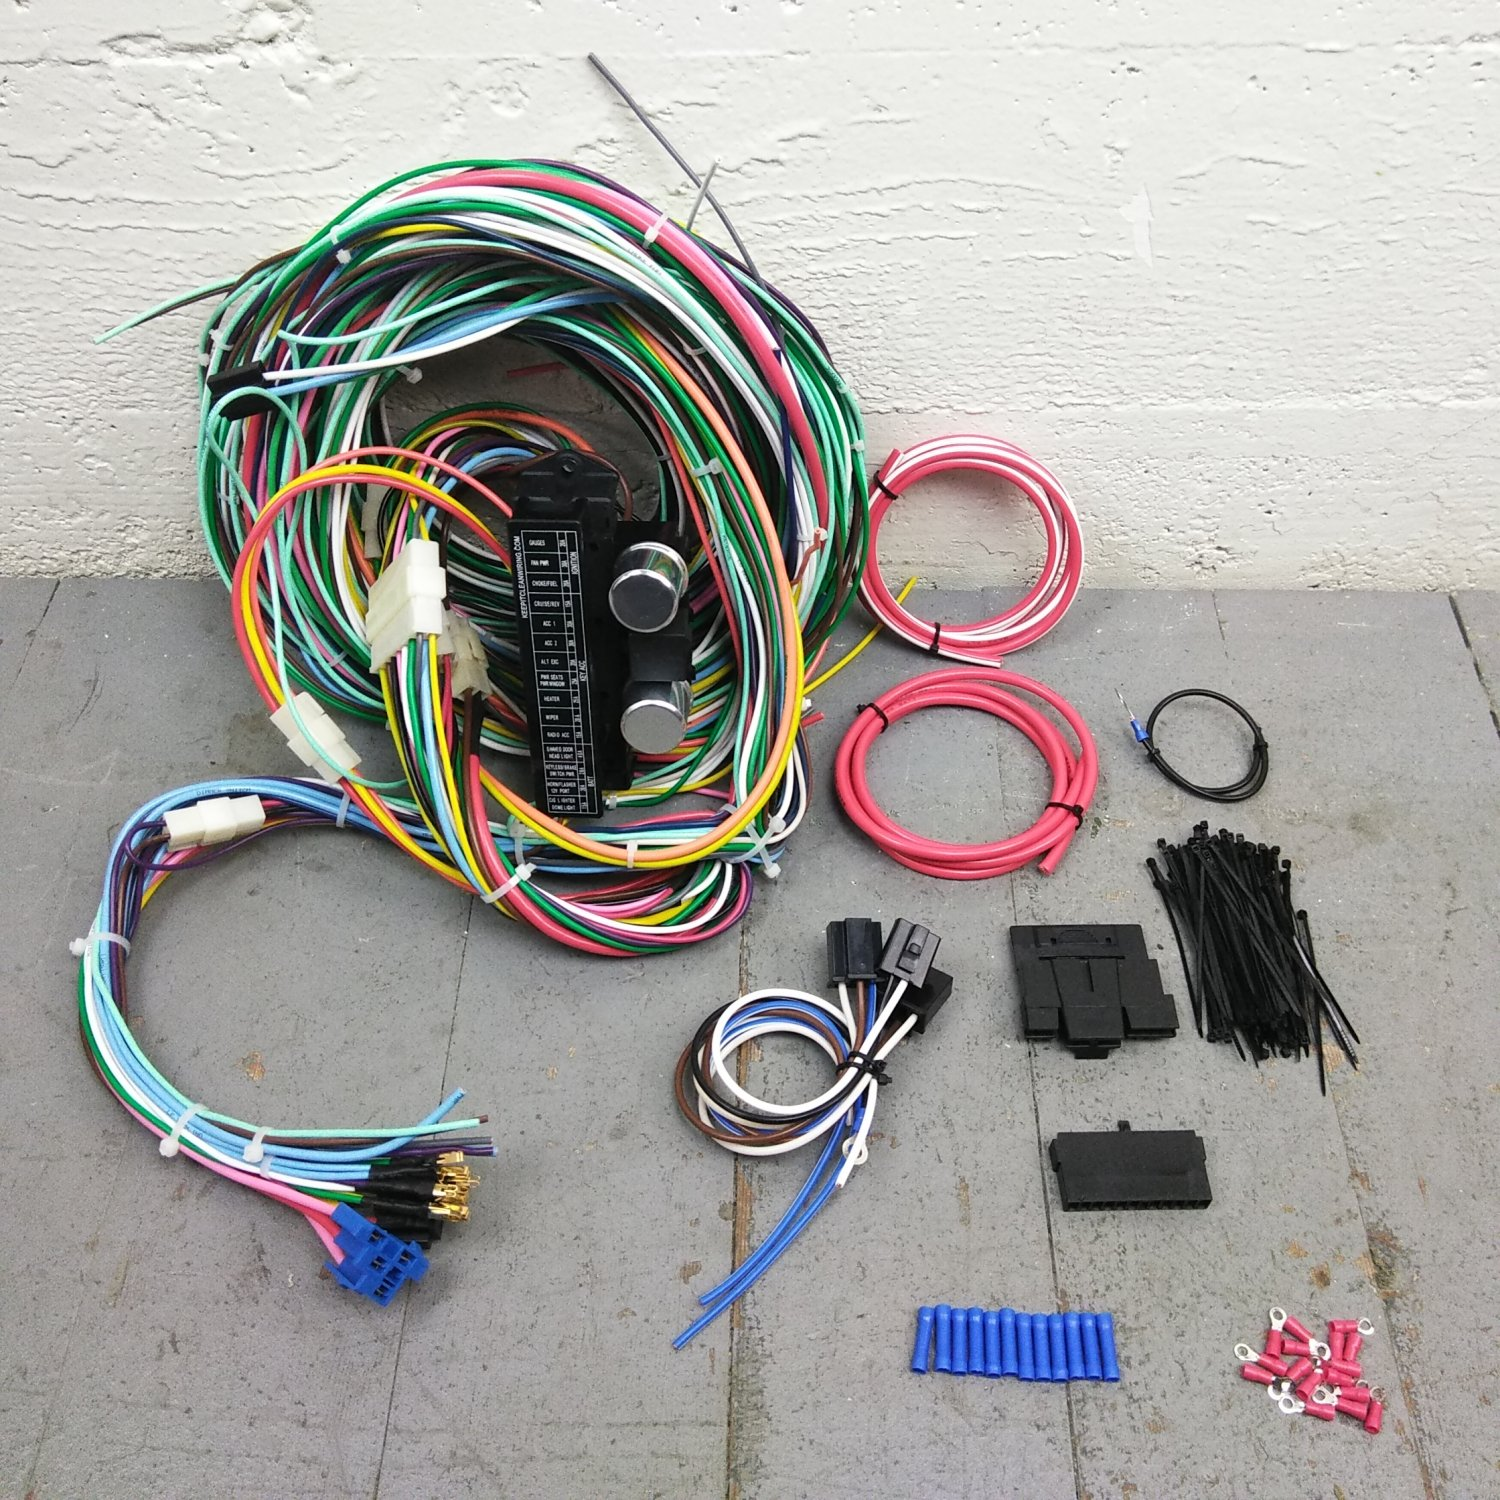 1946 - 1992 Jeep Wire Harness Upgrade Kit fits painless fuse compact new  update. Bar_Product_Description_C